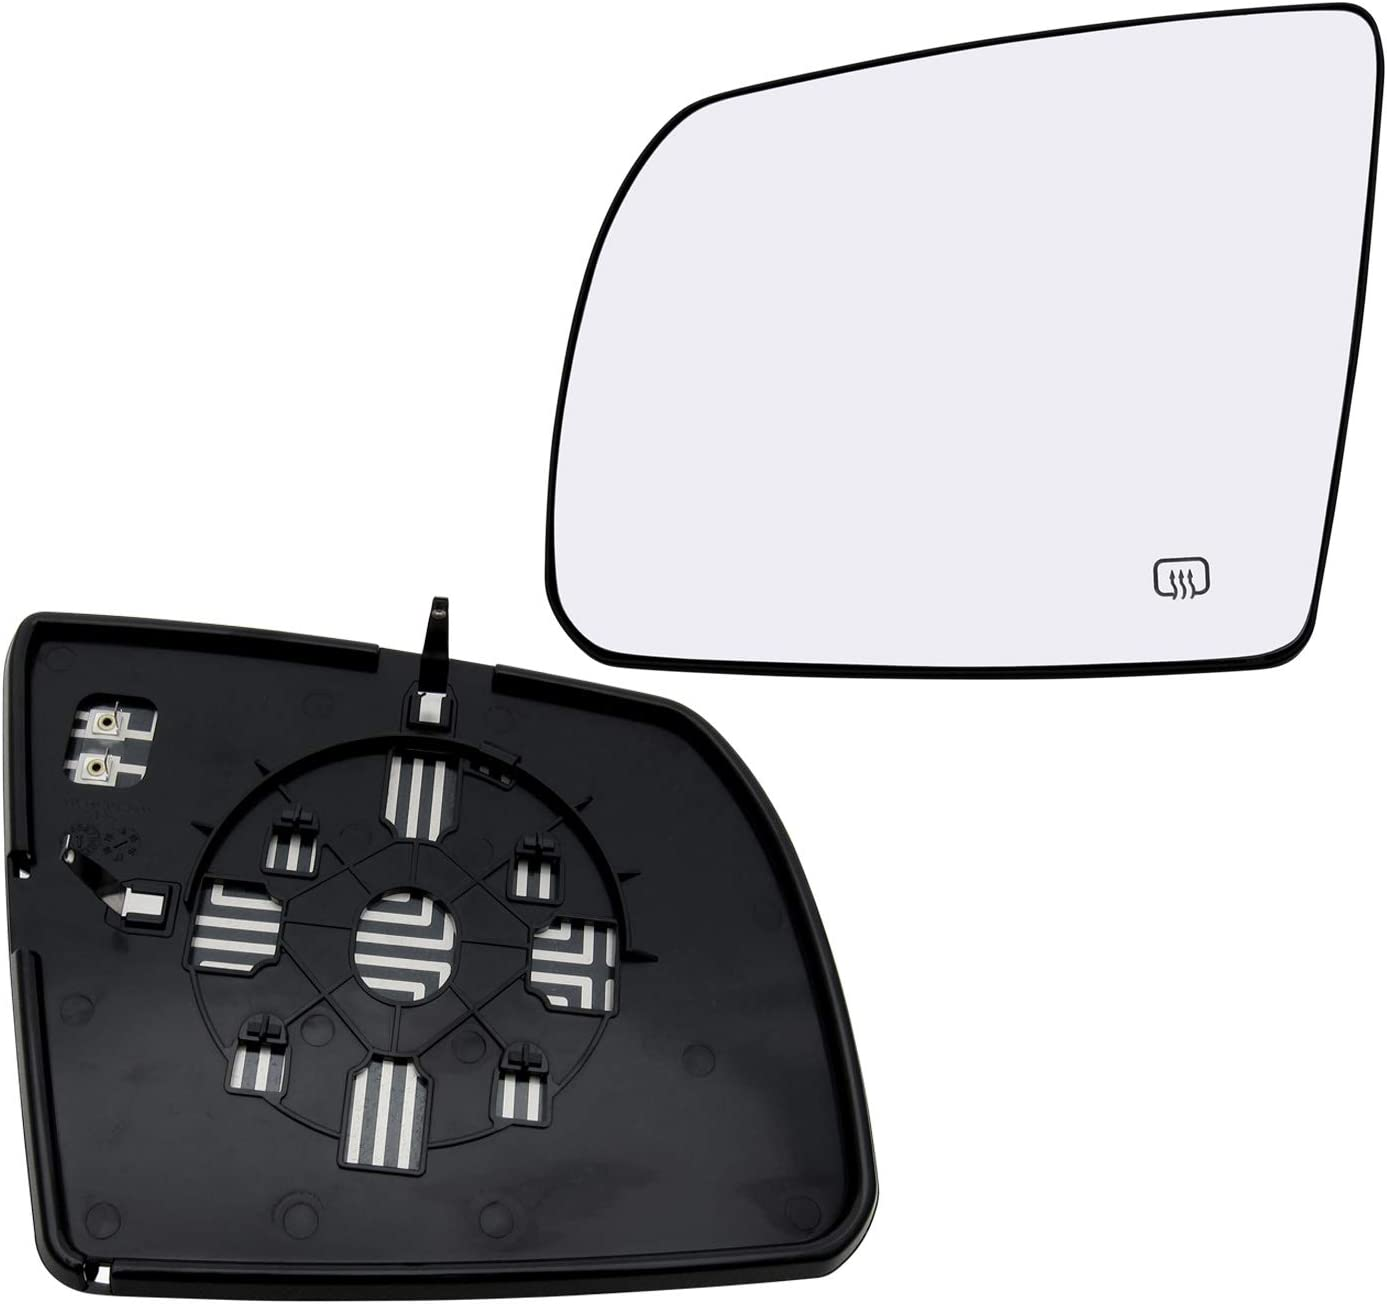 New Replacement Driver Side Mirror Glass W Backing Compatible With 2010-2013 Toyota 4Runner 2008-2013 Highlander Sold By Rugged TUFF